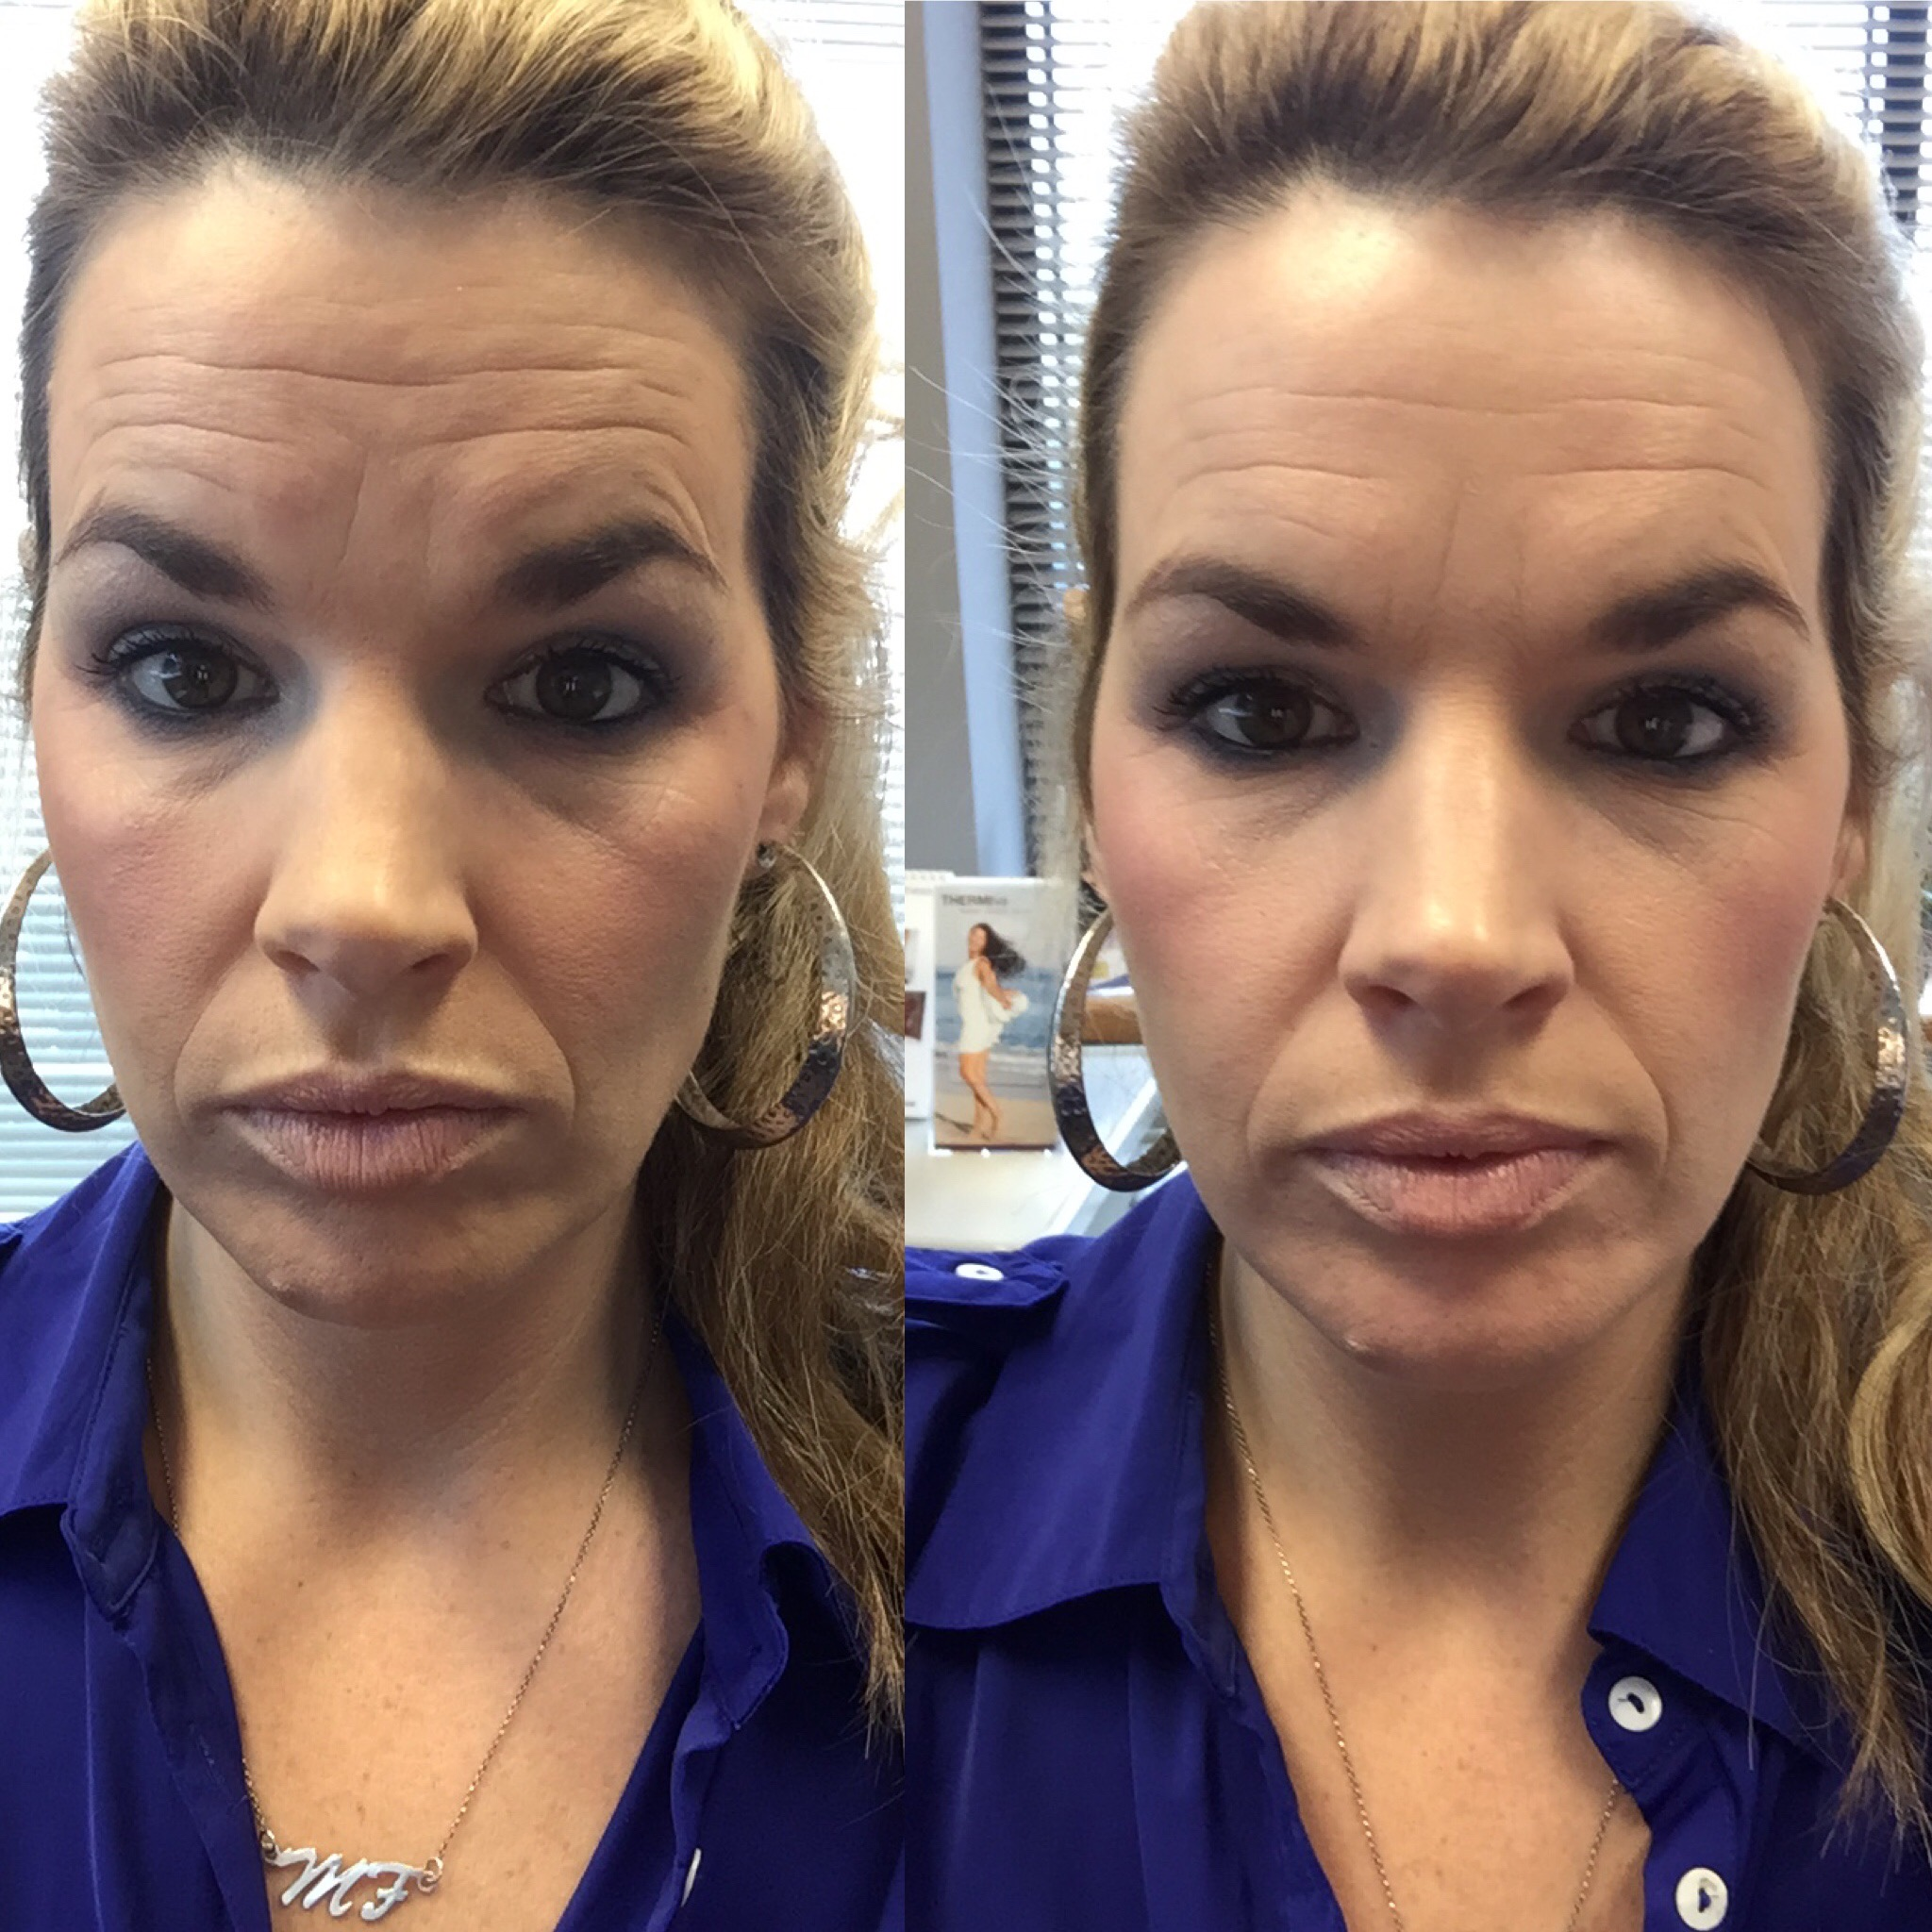 Why I Decided To Get Botox And Filler